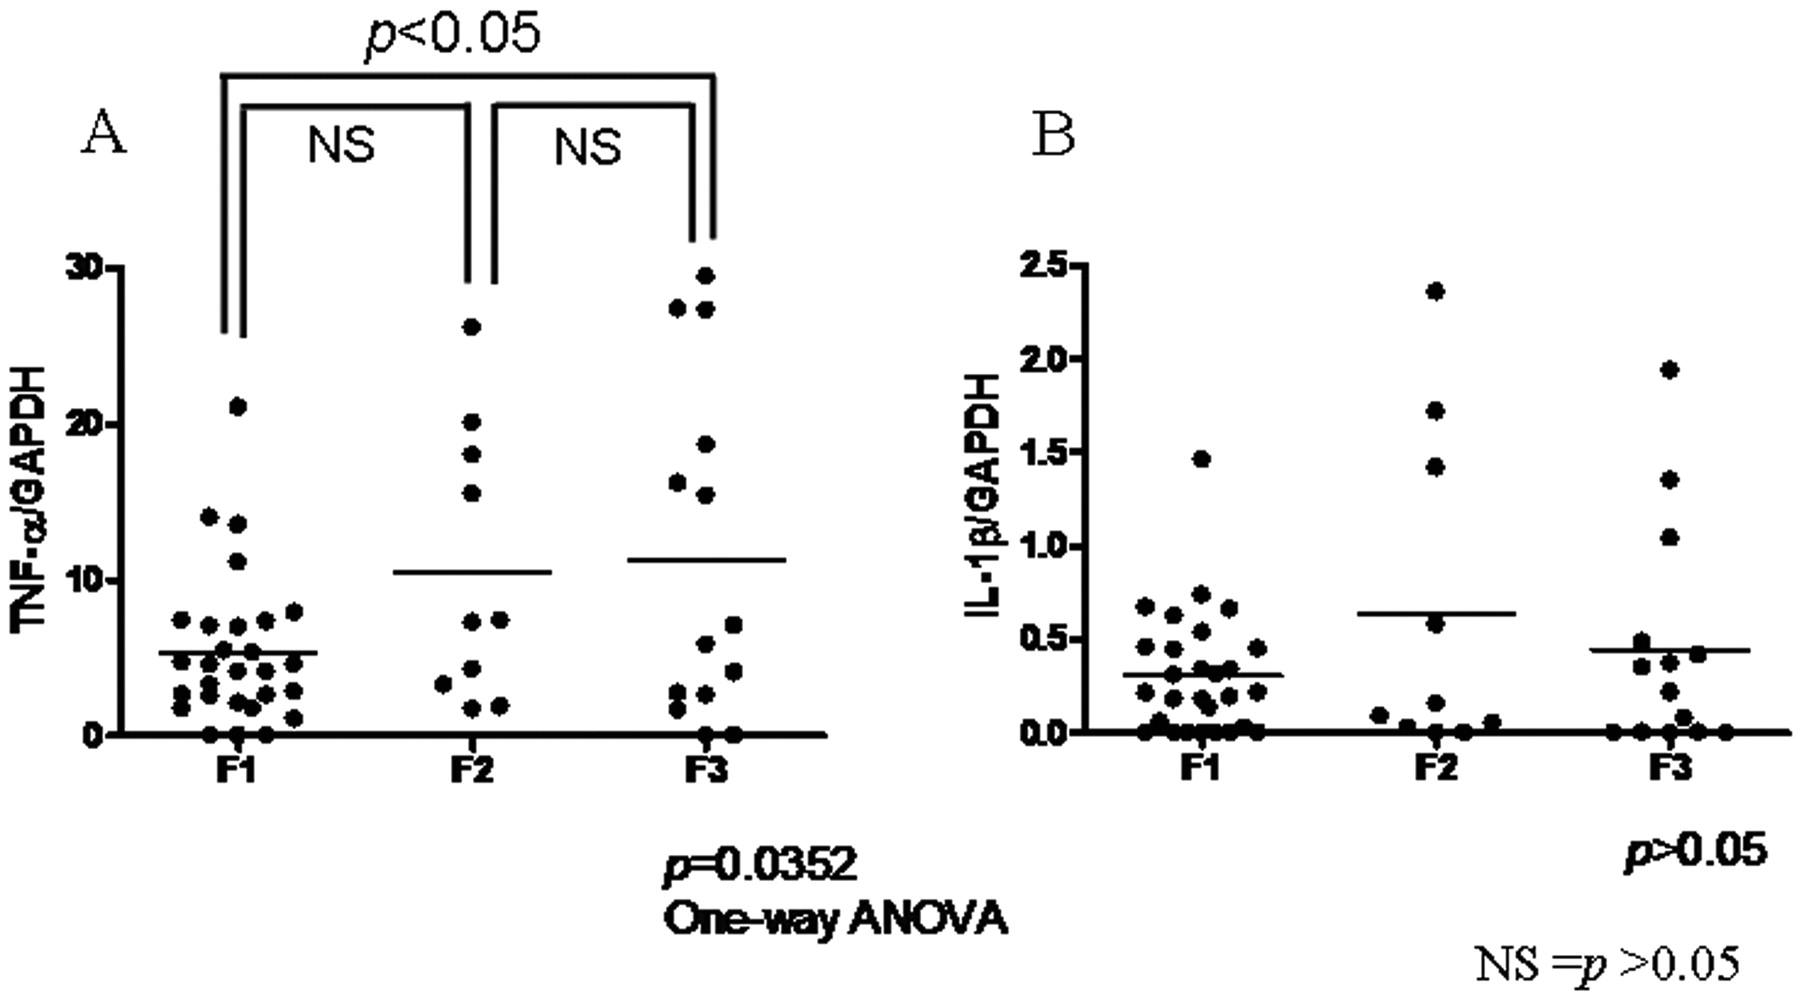 Decreased Expression of Cytochromes P450 1A2, 2E1, and 3A4 and Drug